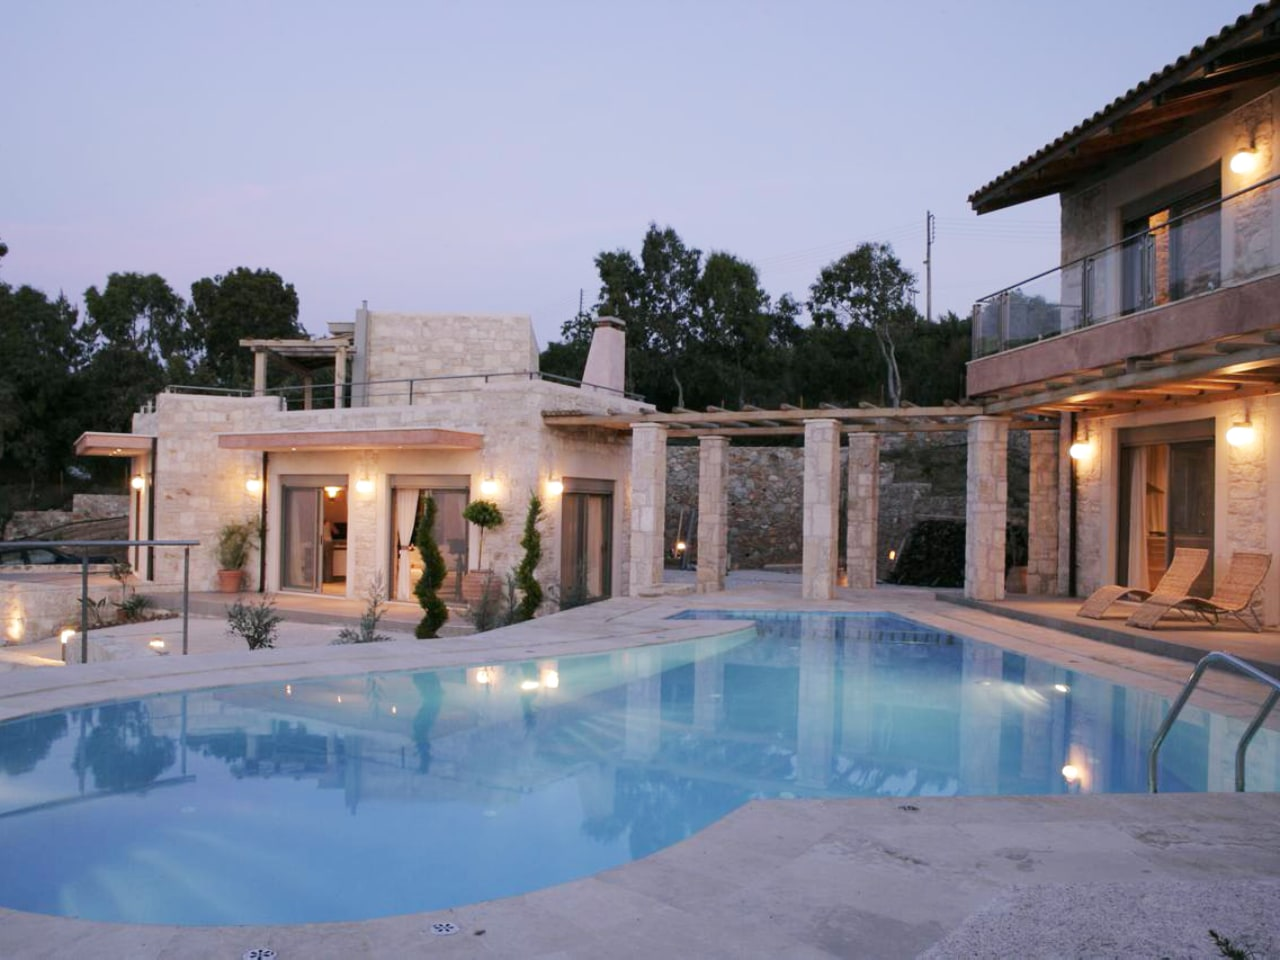 Are_you_looking_for_bioclimatic_residences_in_Crete?_